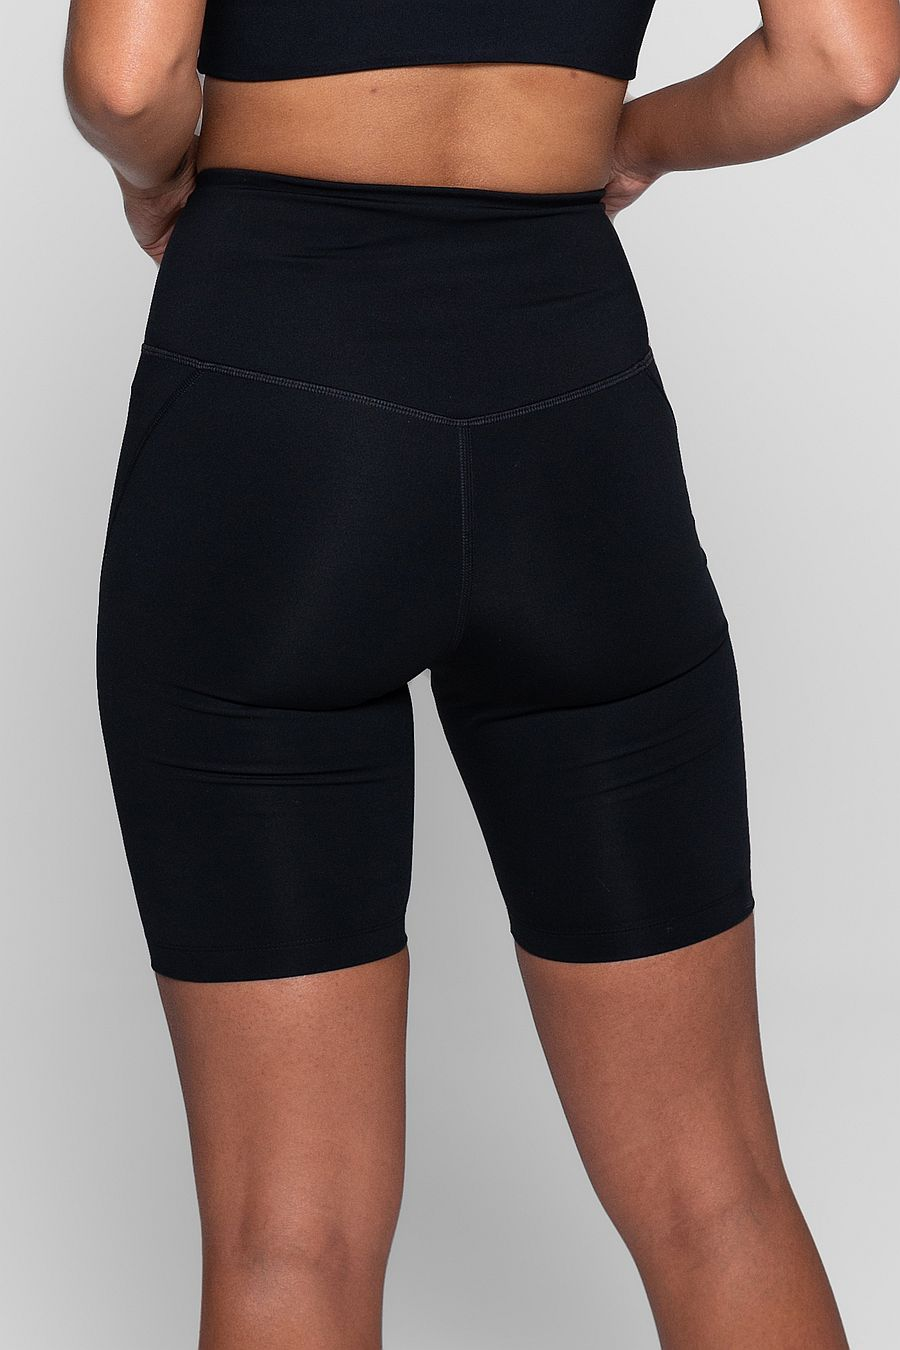 Girlfriend Collective Black High Rise Bike Short